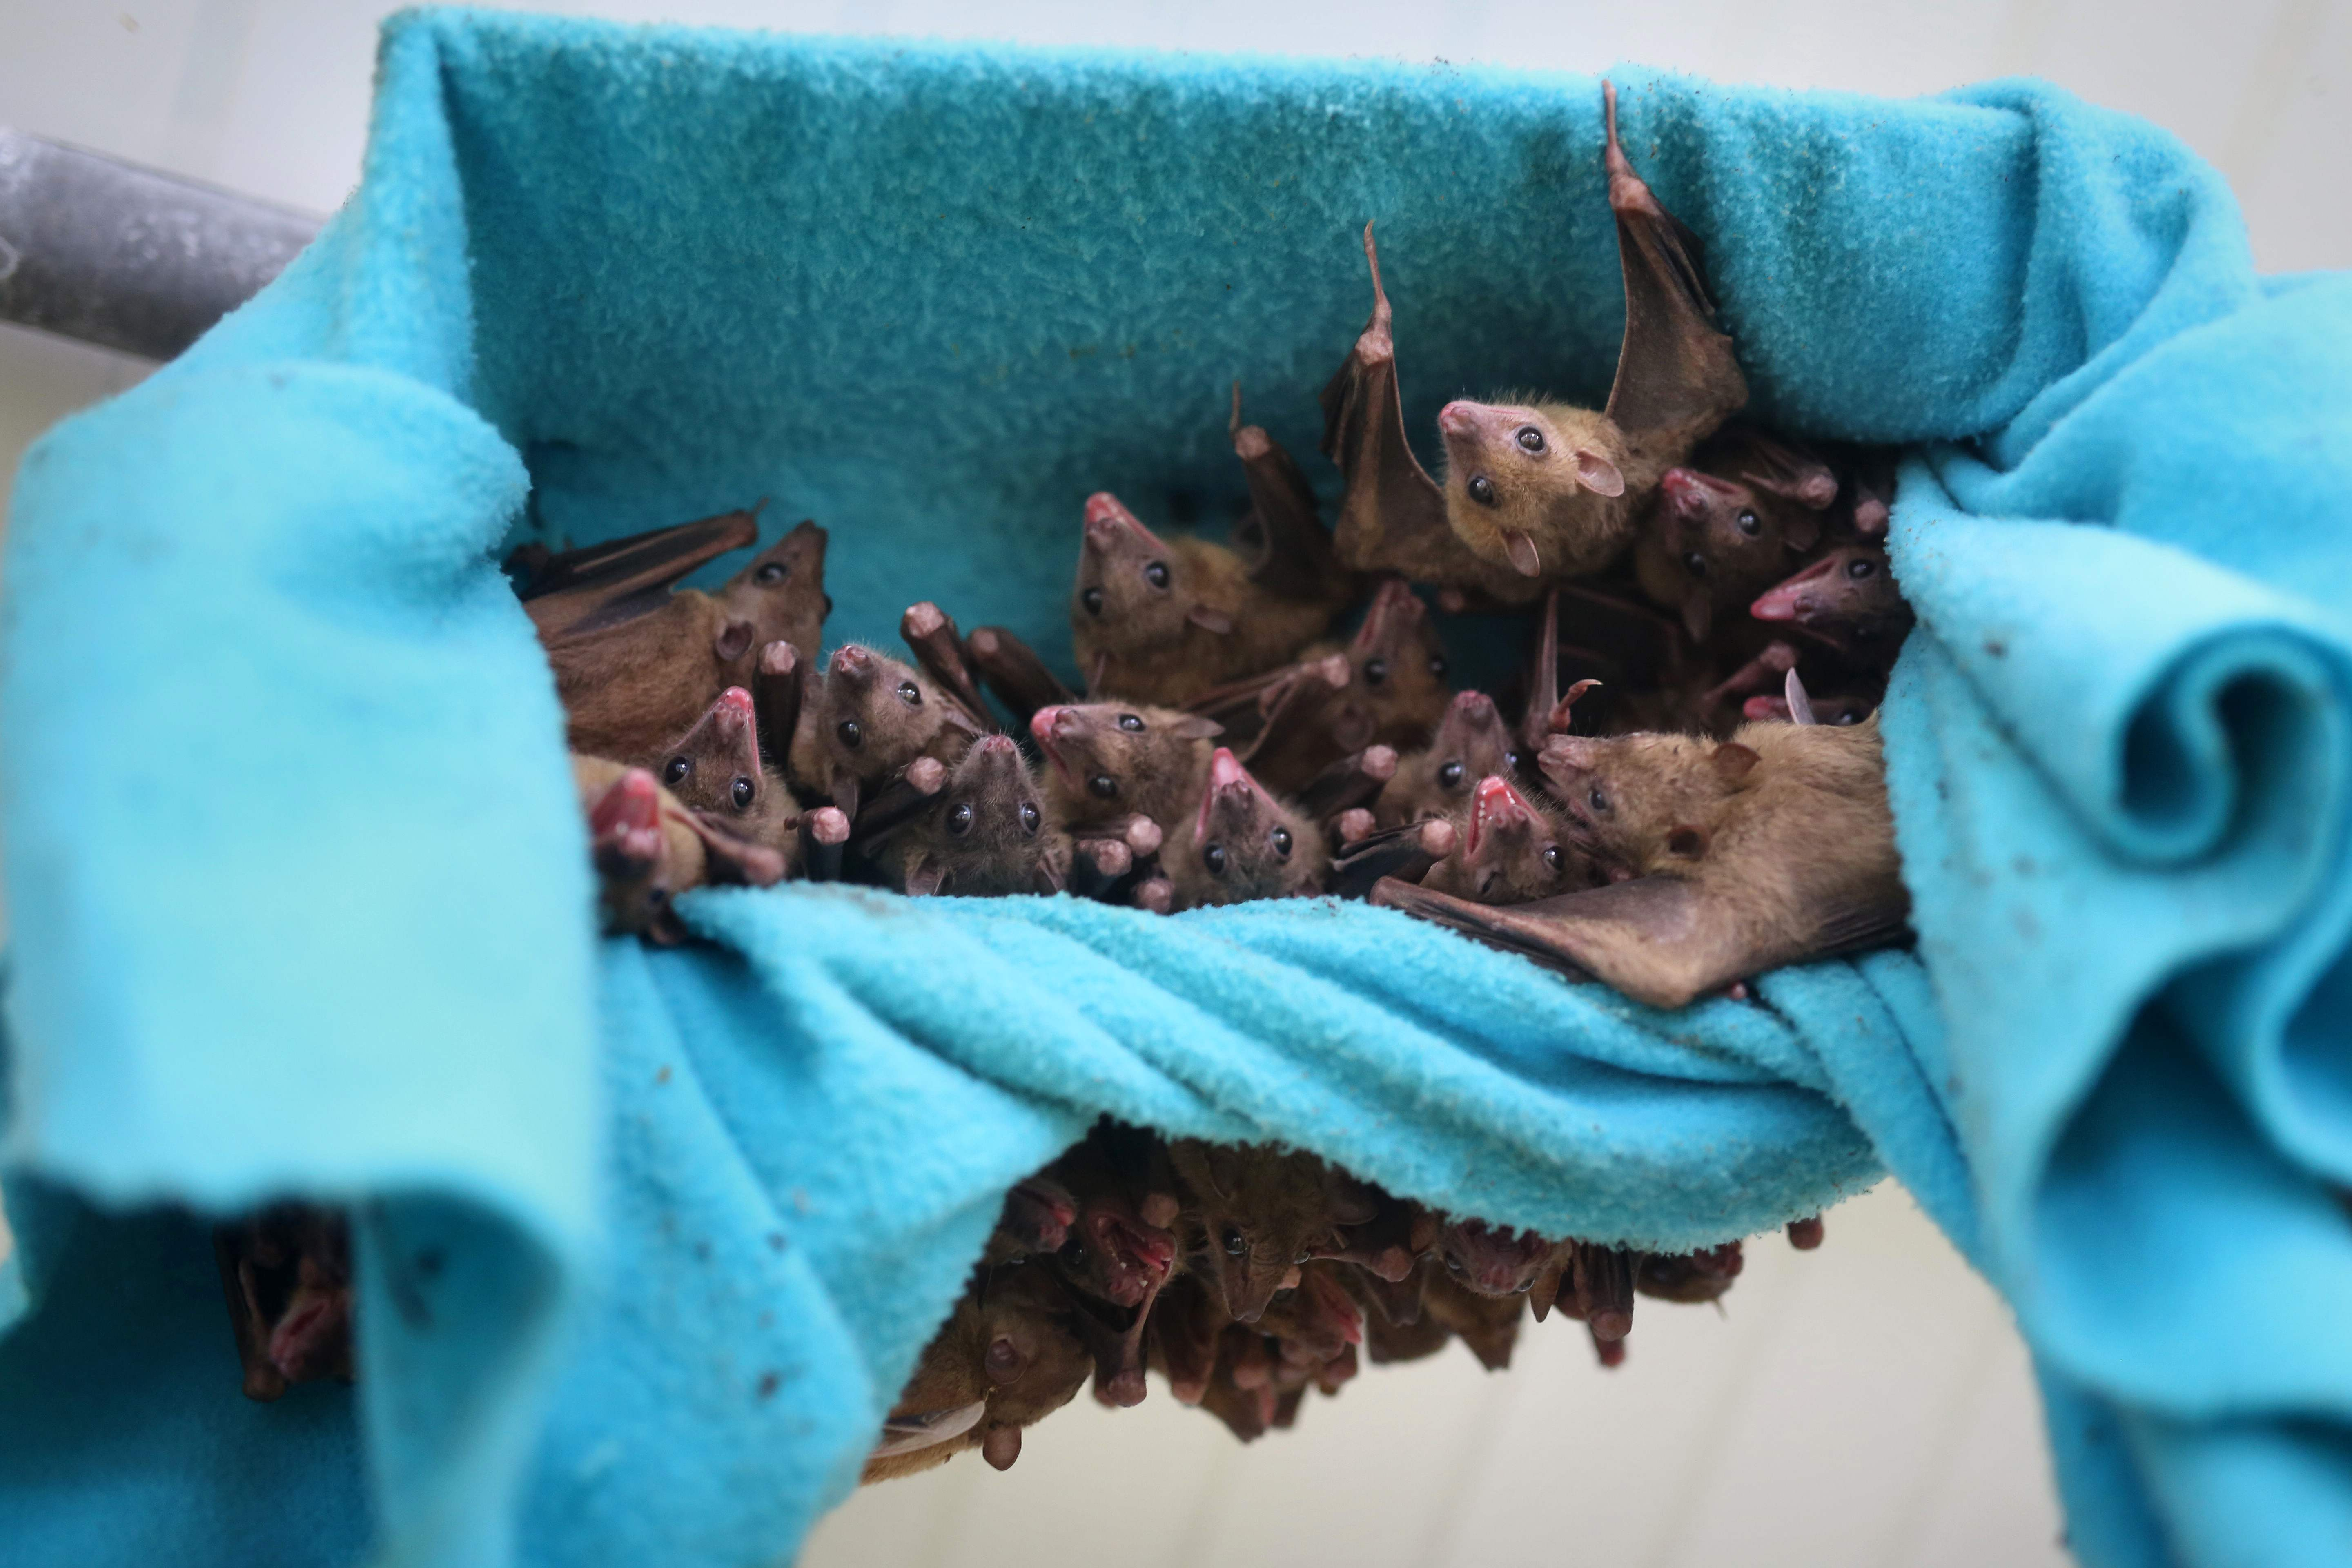 Stench of bat feces forces New Hampshire elementary school to close eight classrooms